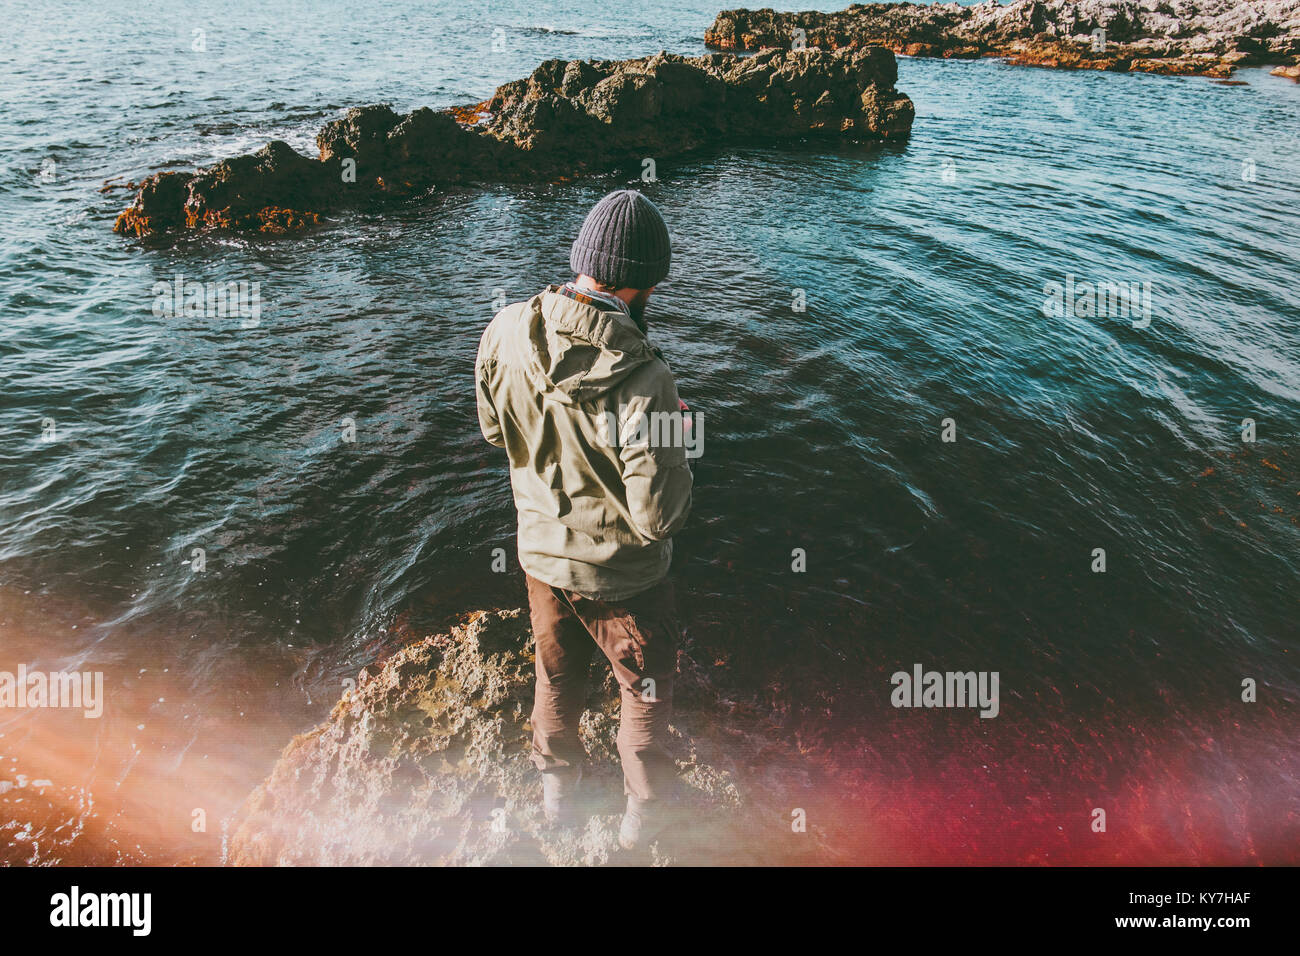 Man traveler walking at cold sea alone Travel Lifestyle concept adventure vacations outdoor natural sun lighting - Stock Image